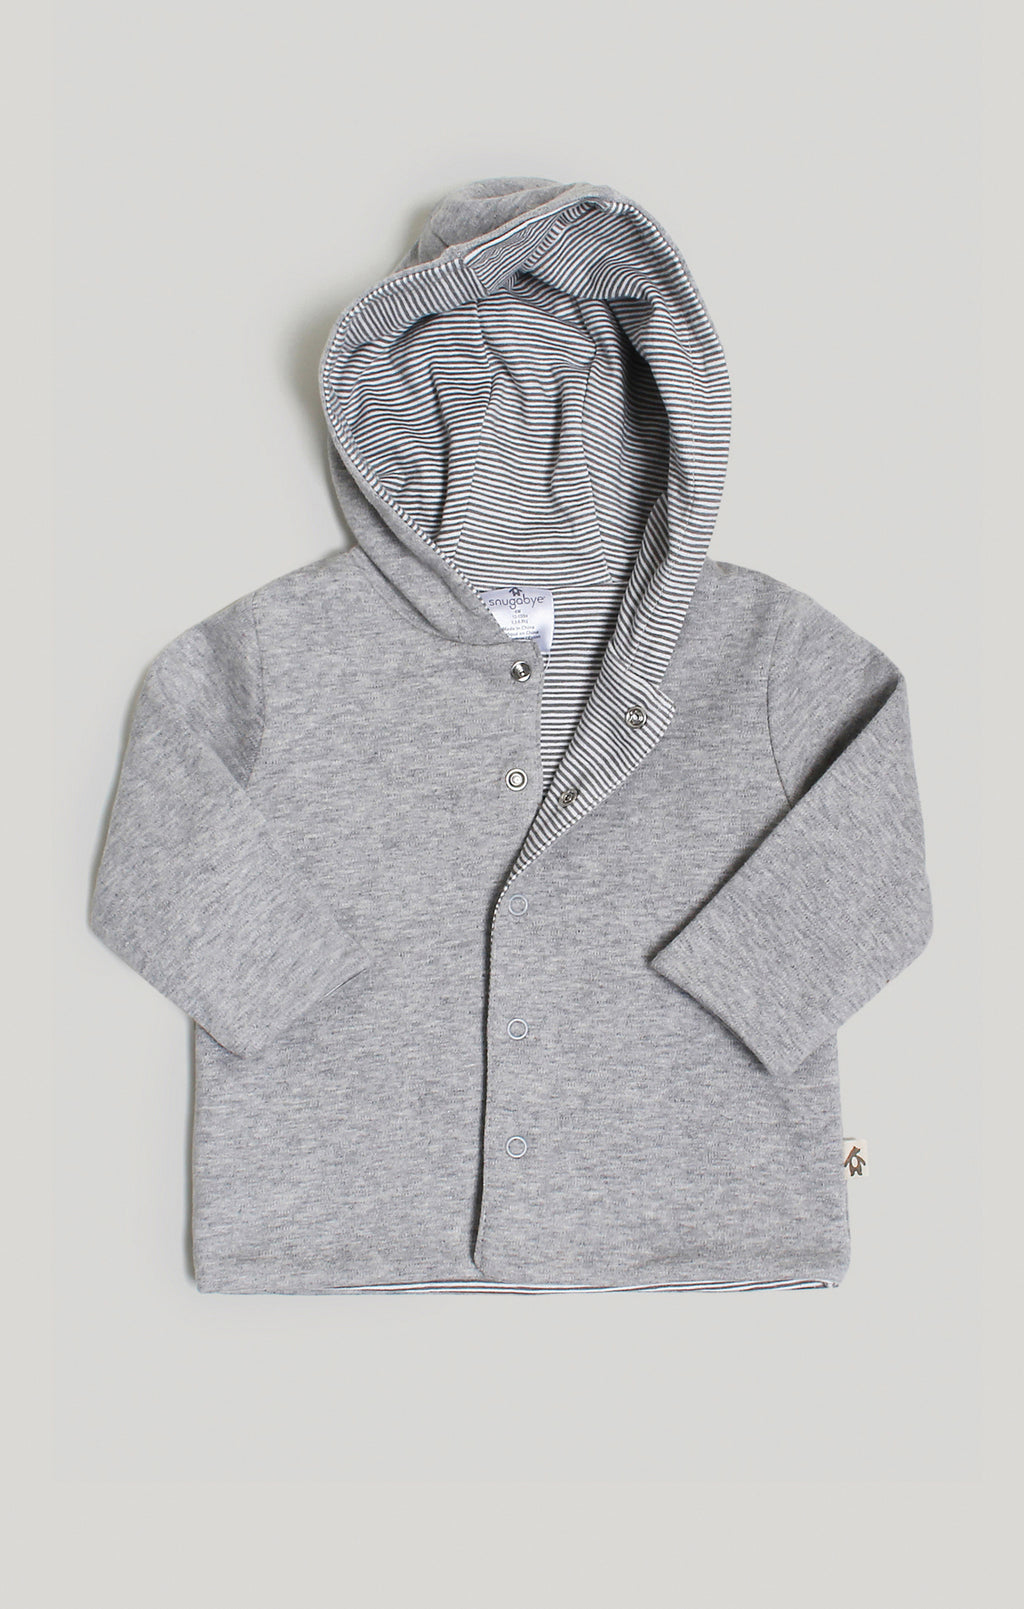 Baby Clothes - Reversible 2 Gray Hoodies in 1